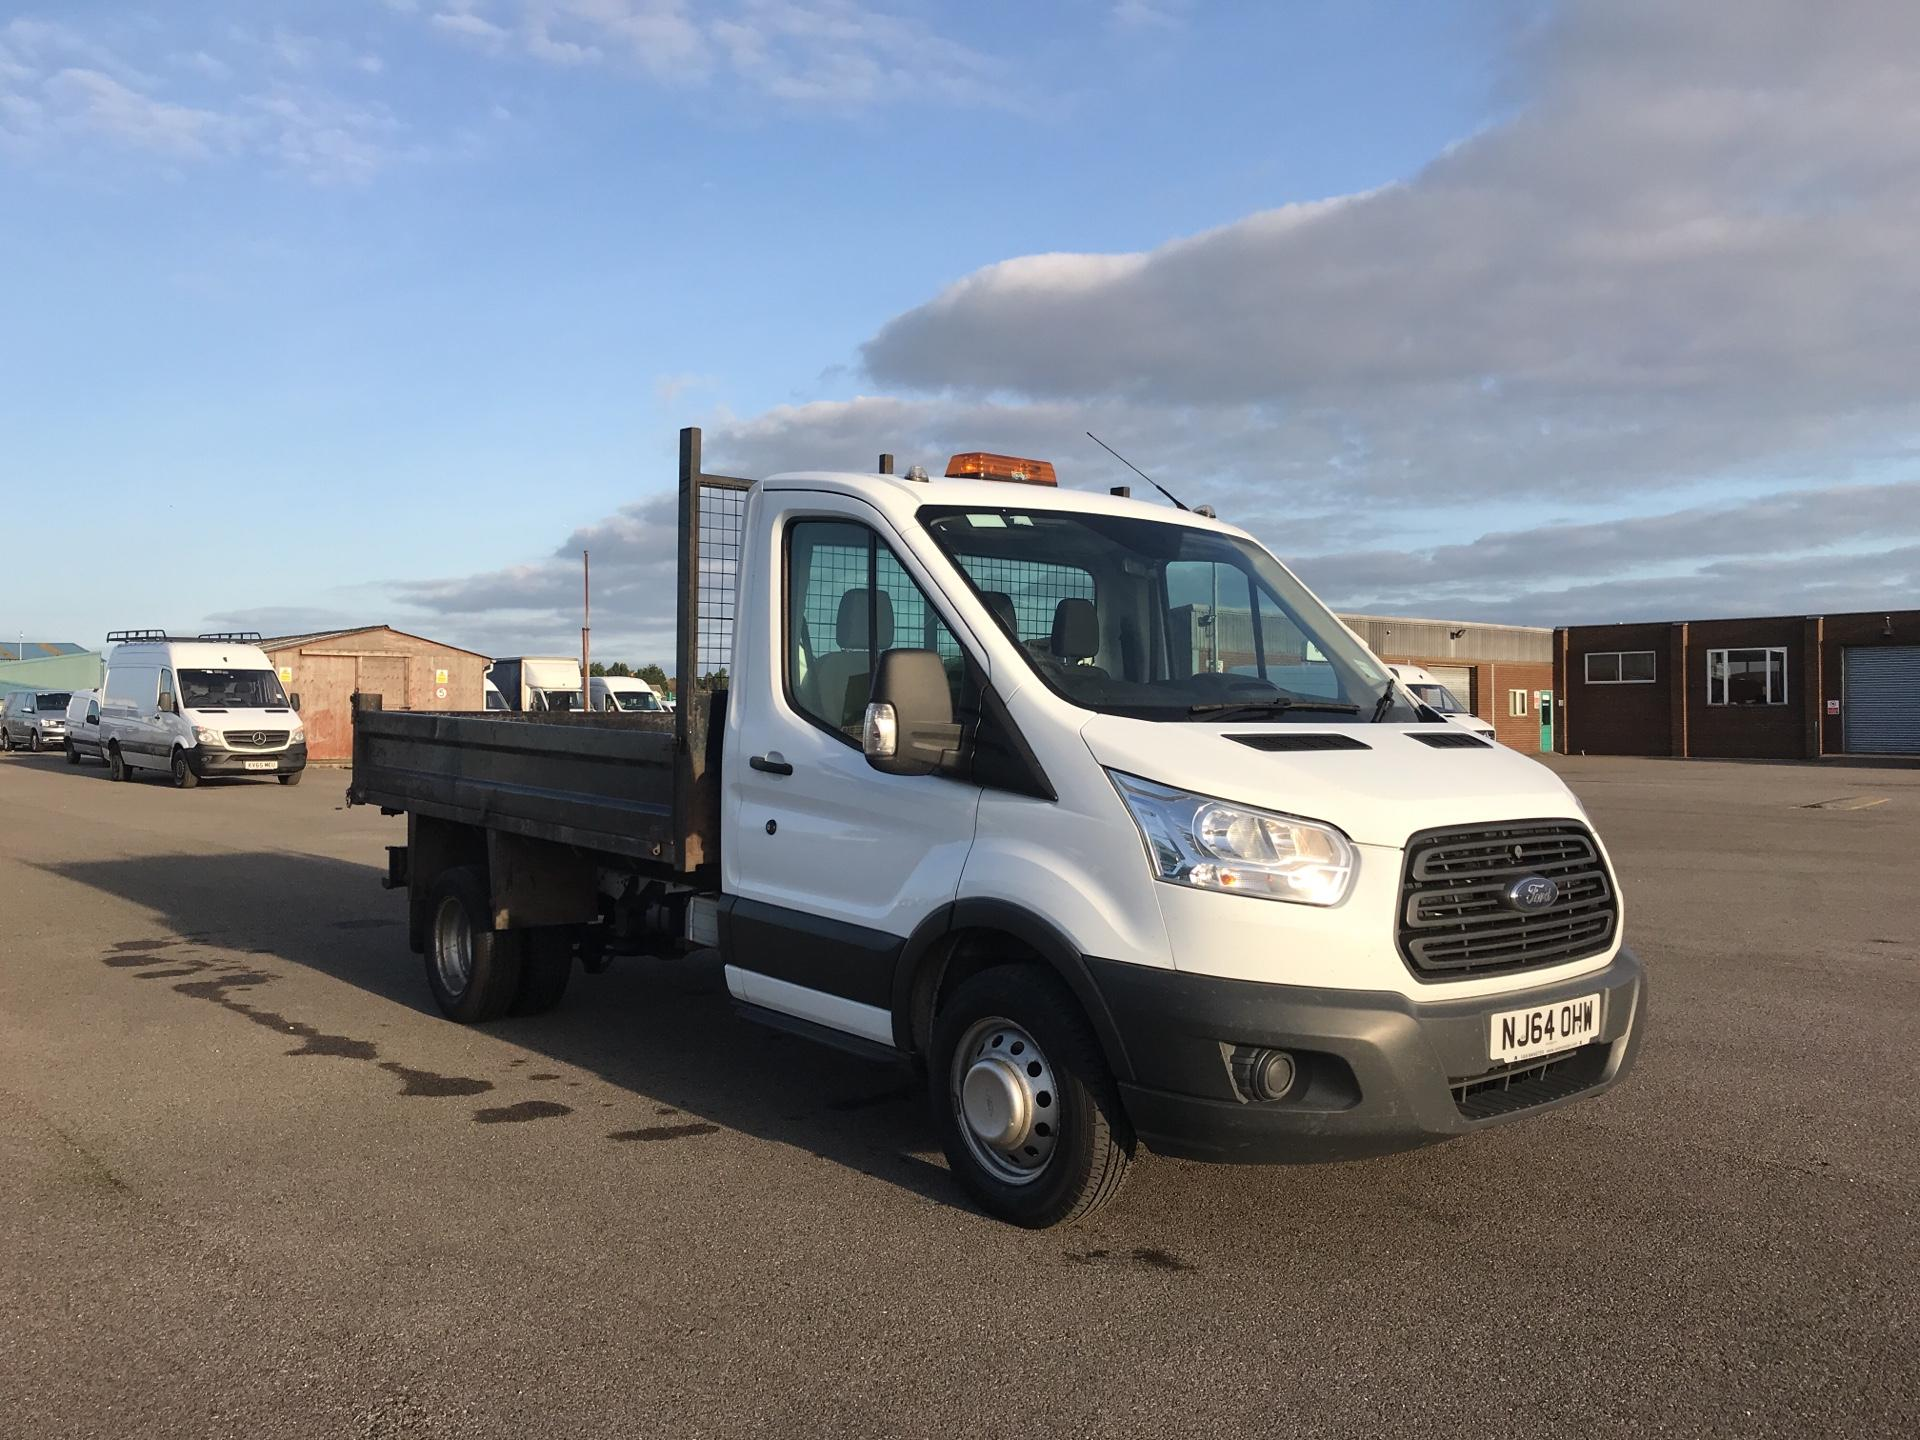 2014 Ford Transit 350 L2 SINGLE CAB TIPPER 100PS EURO 5. VALUE RANGE VEHICLE - CONDITION REFLECTED IN PRICE (NJ64OHW)